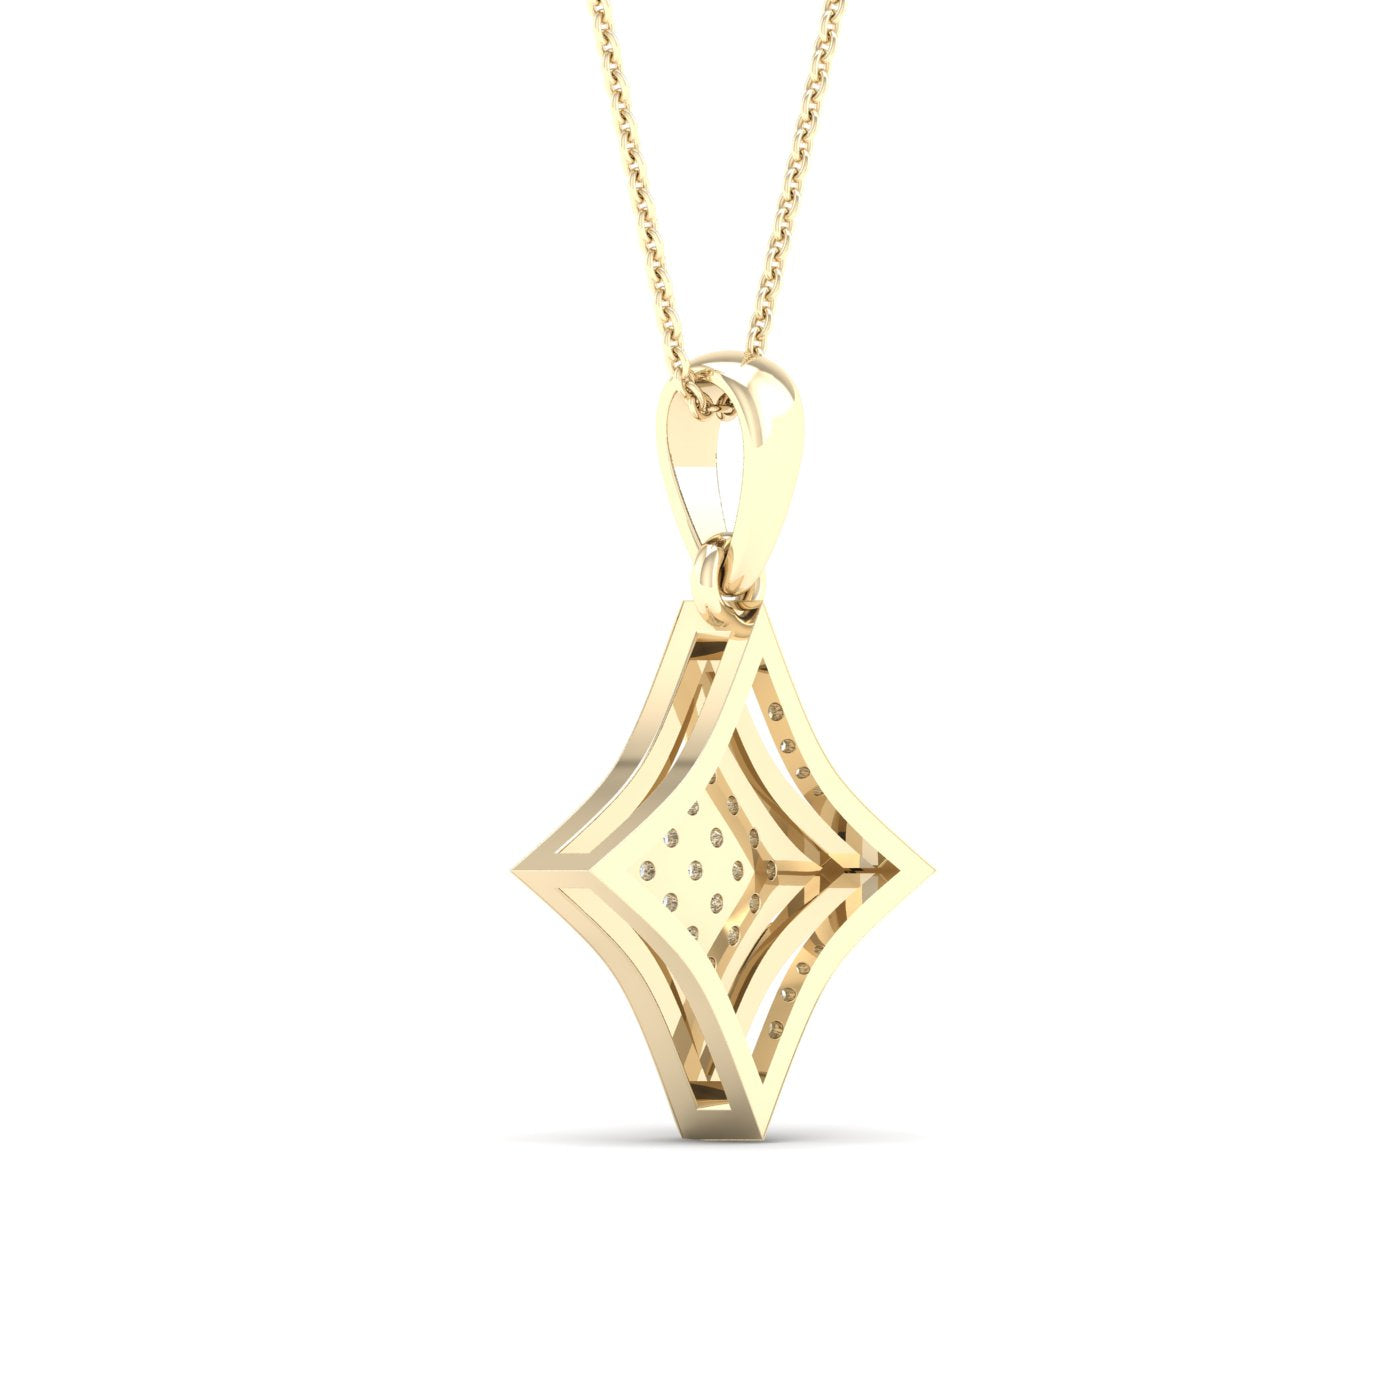 Diamond Rhombus Pendant Round Cut 0.05 Carats 10KT Gold with Chain